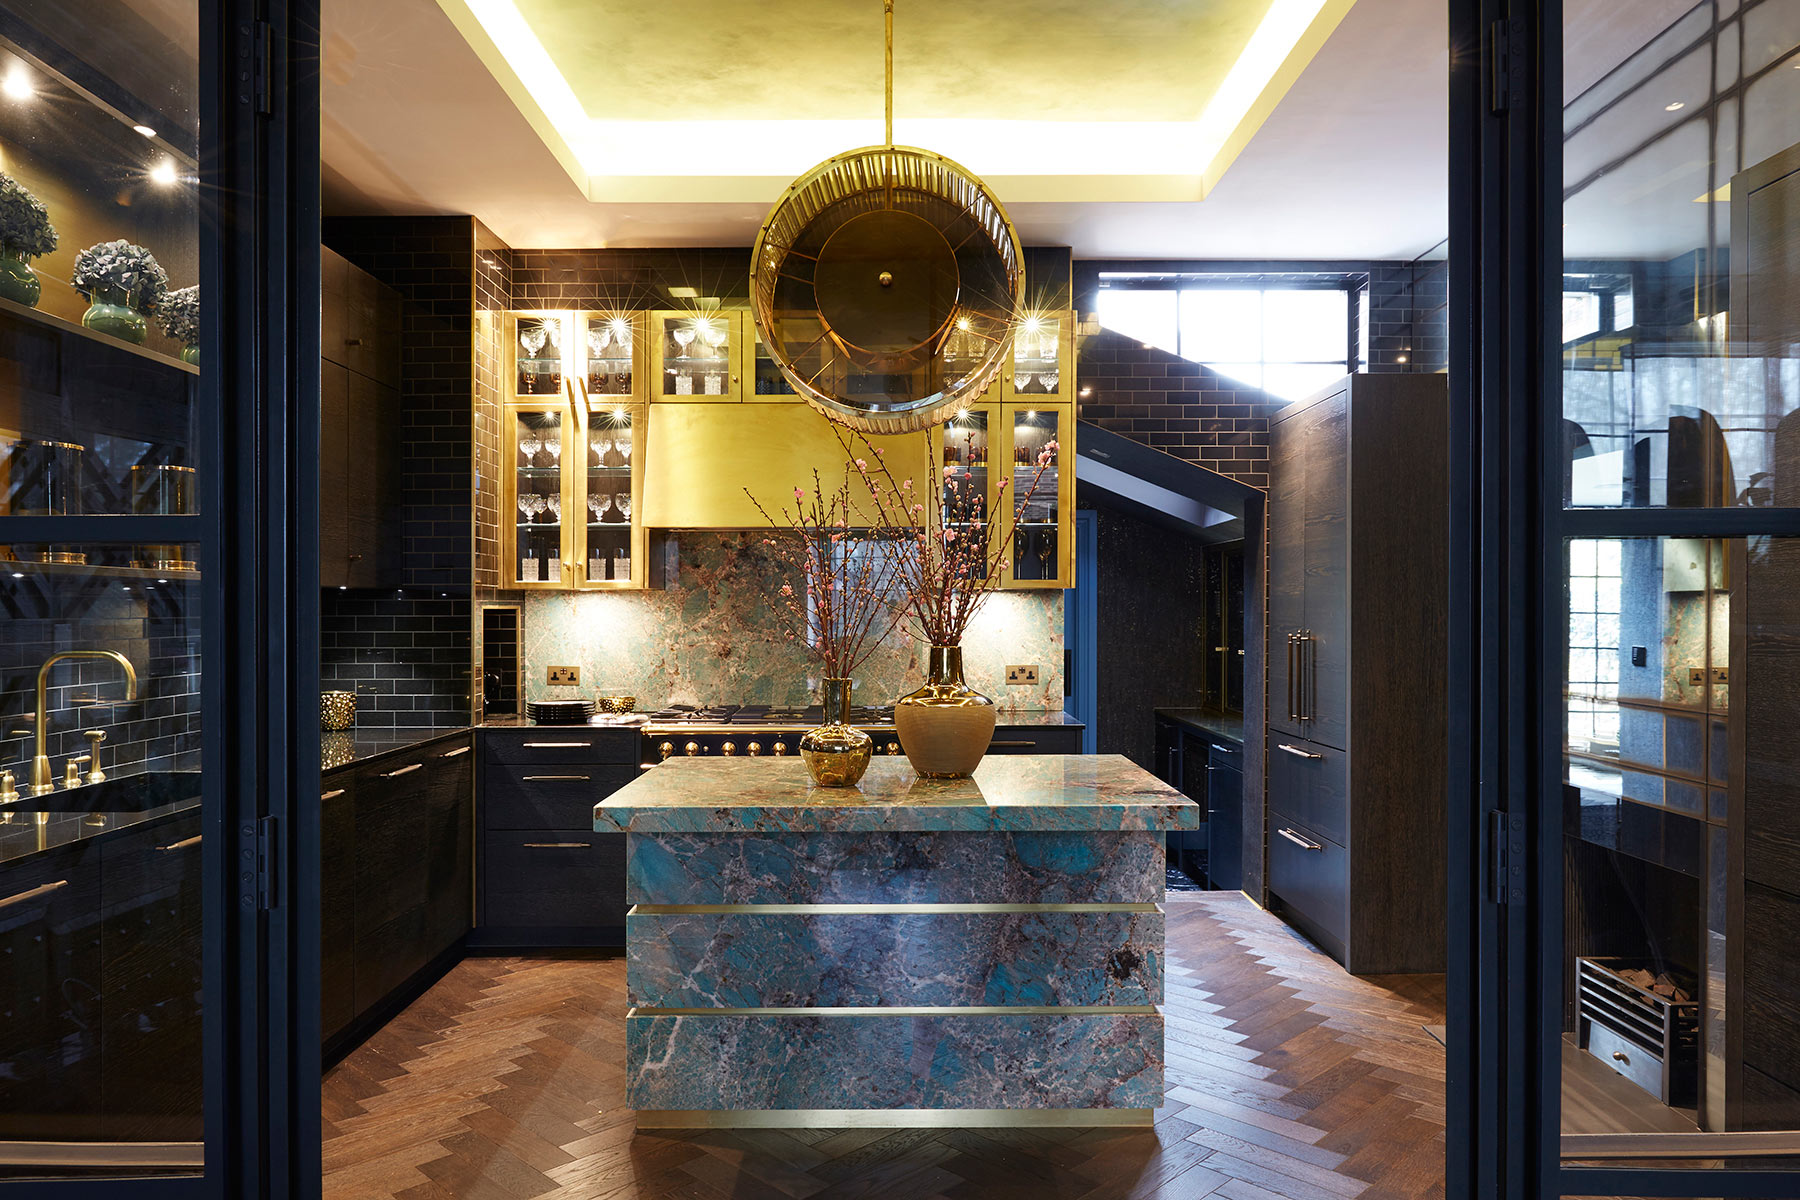 luxury interior Kitchen Design with Tiffany Blue Amazonite Stone Island and Vintage Brass Chandelier by Trilbey Gordon Interiors